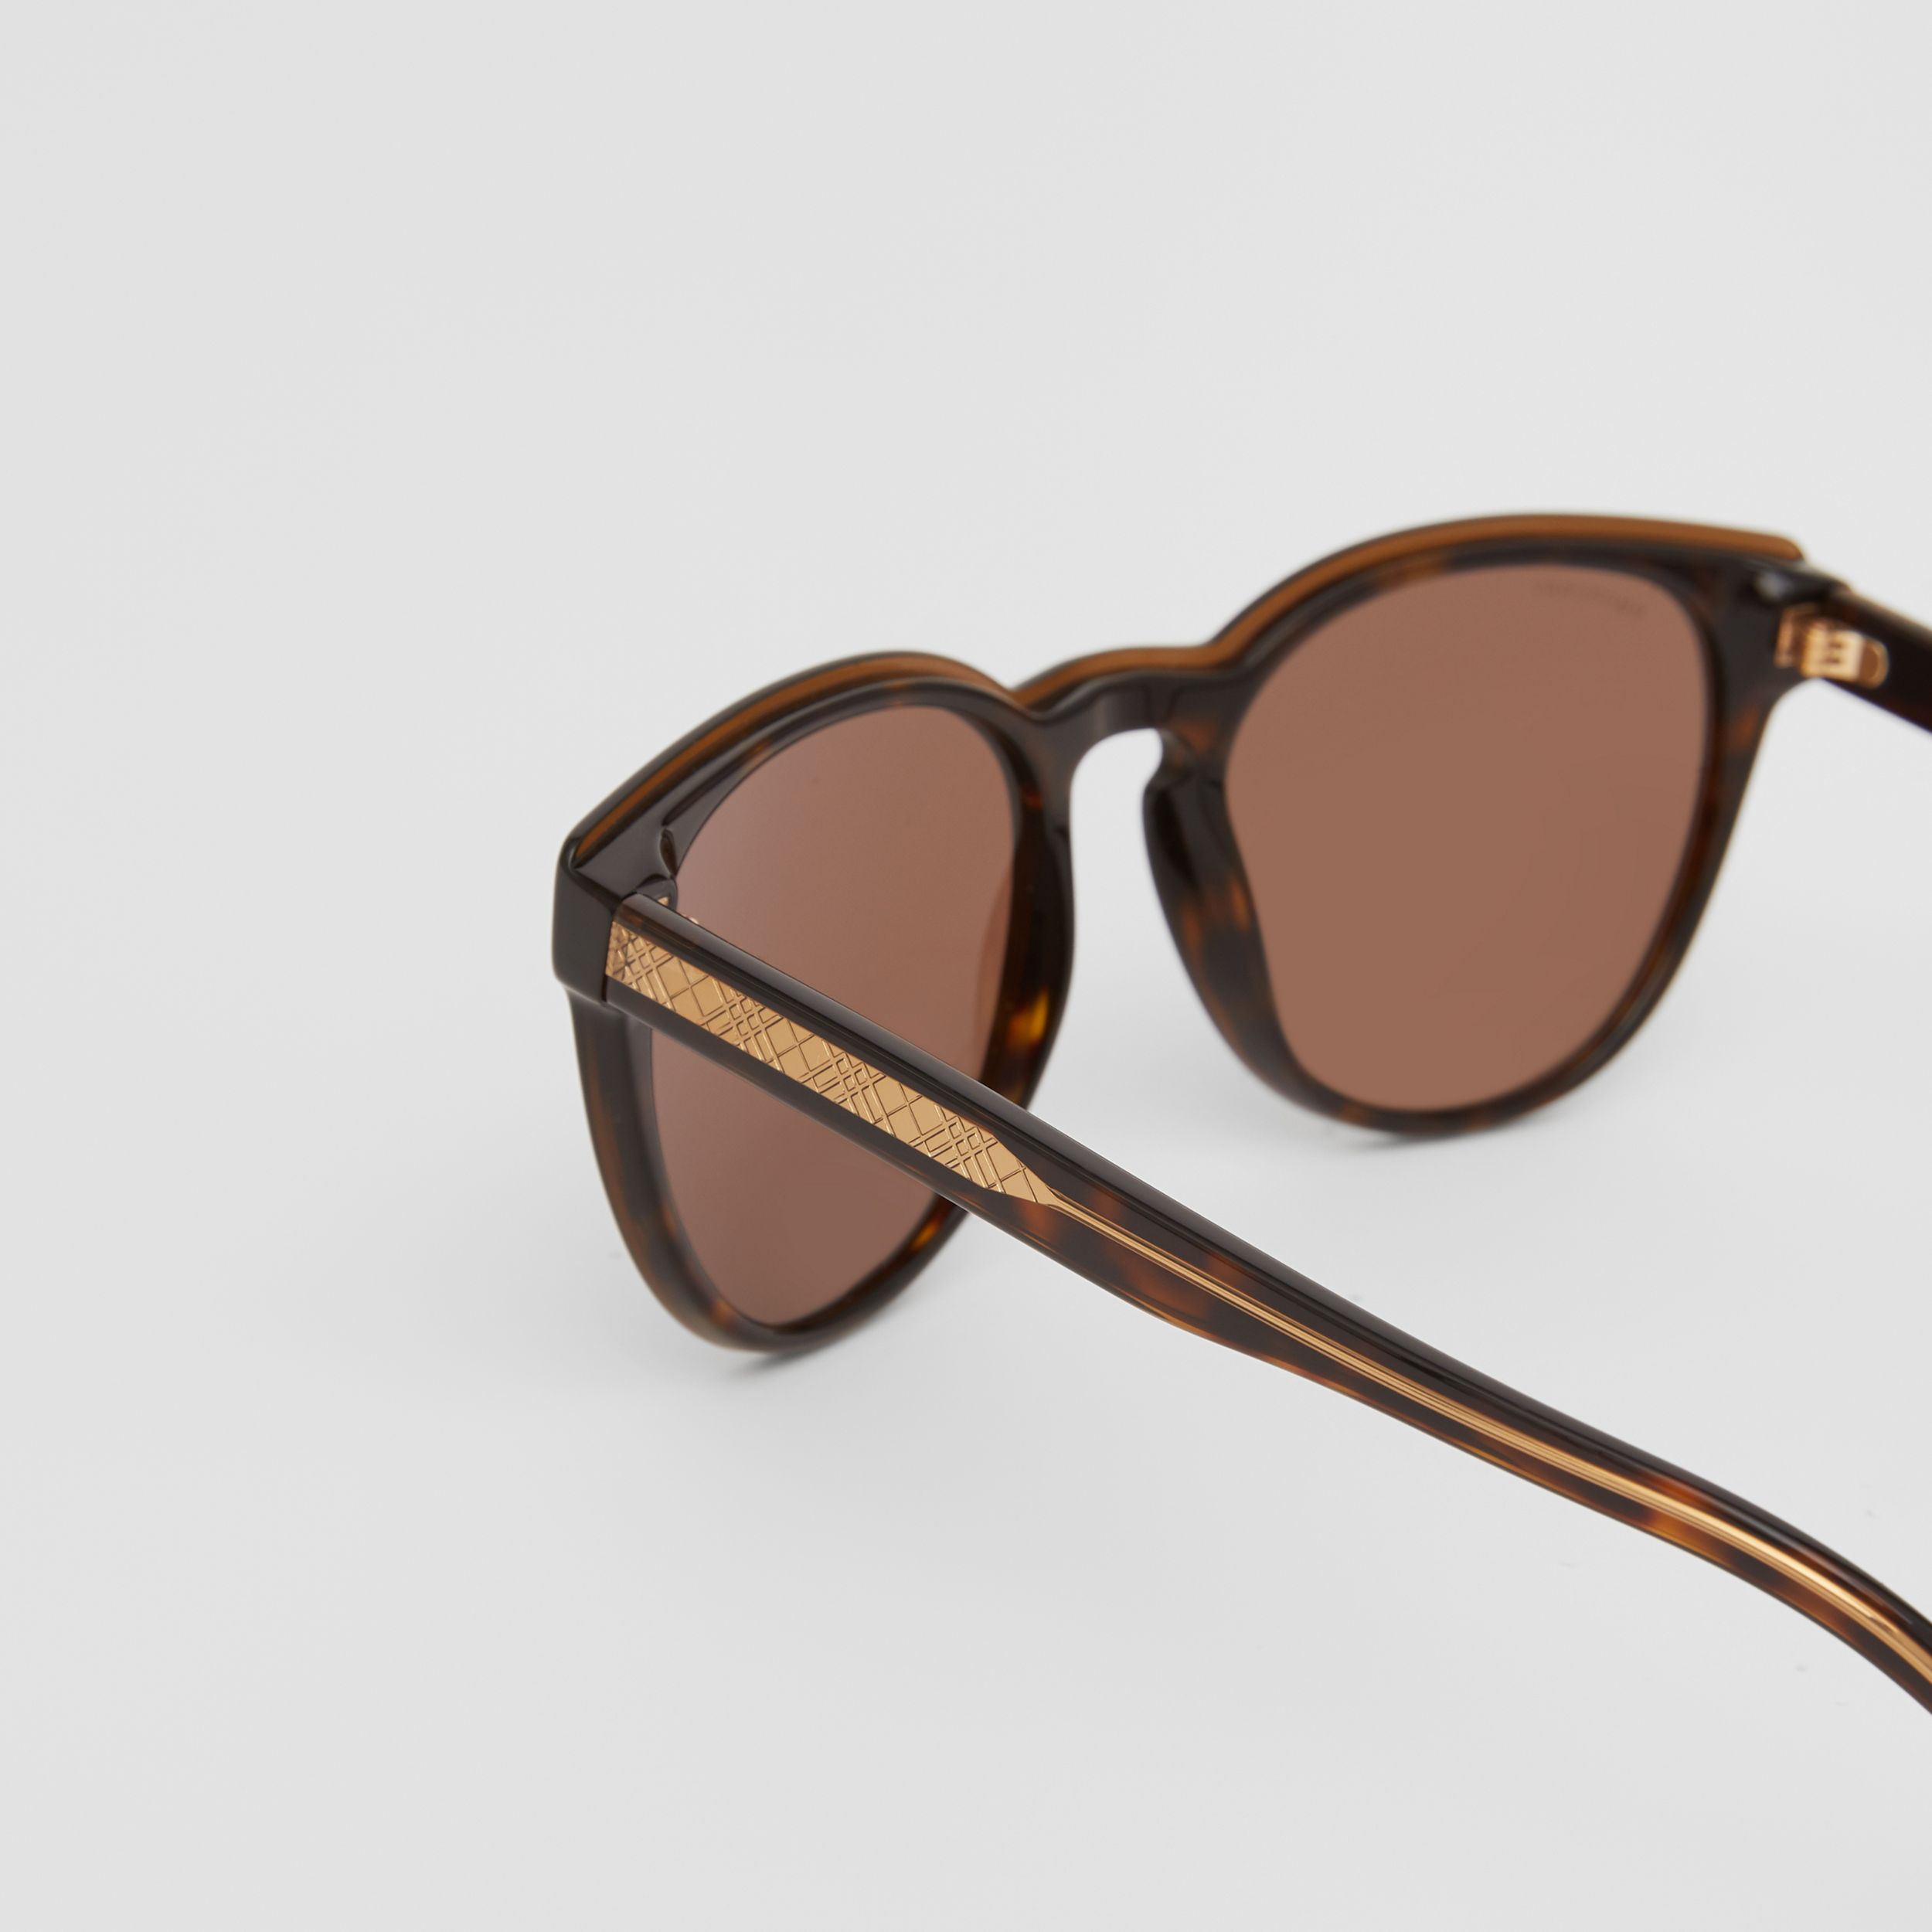 Round Frame Sunglasses in Tortoiseshell - Men | Burberry United Kingdom - 2